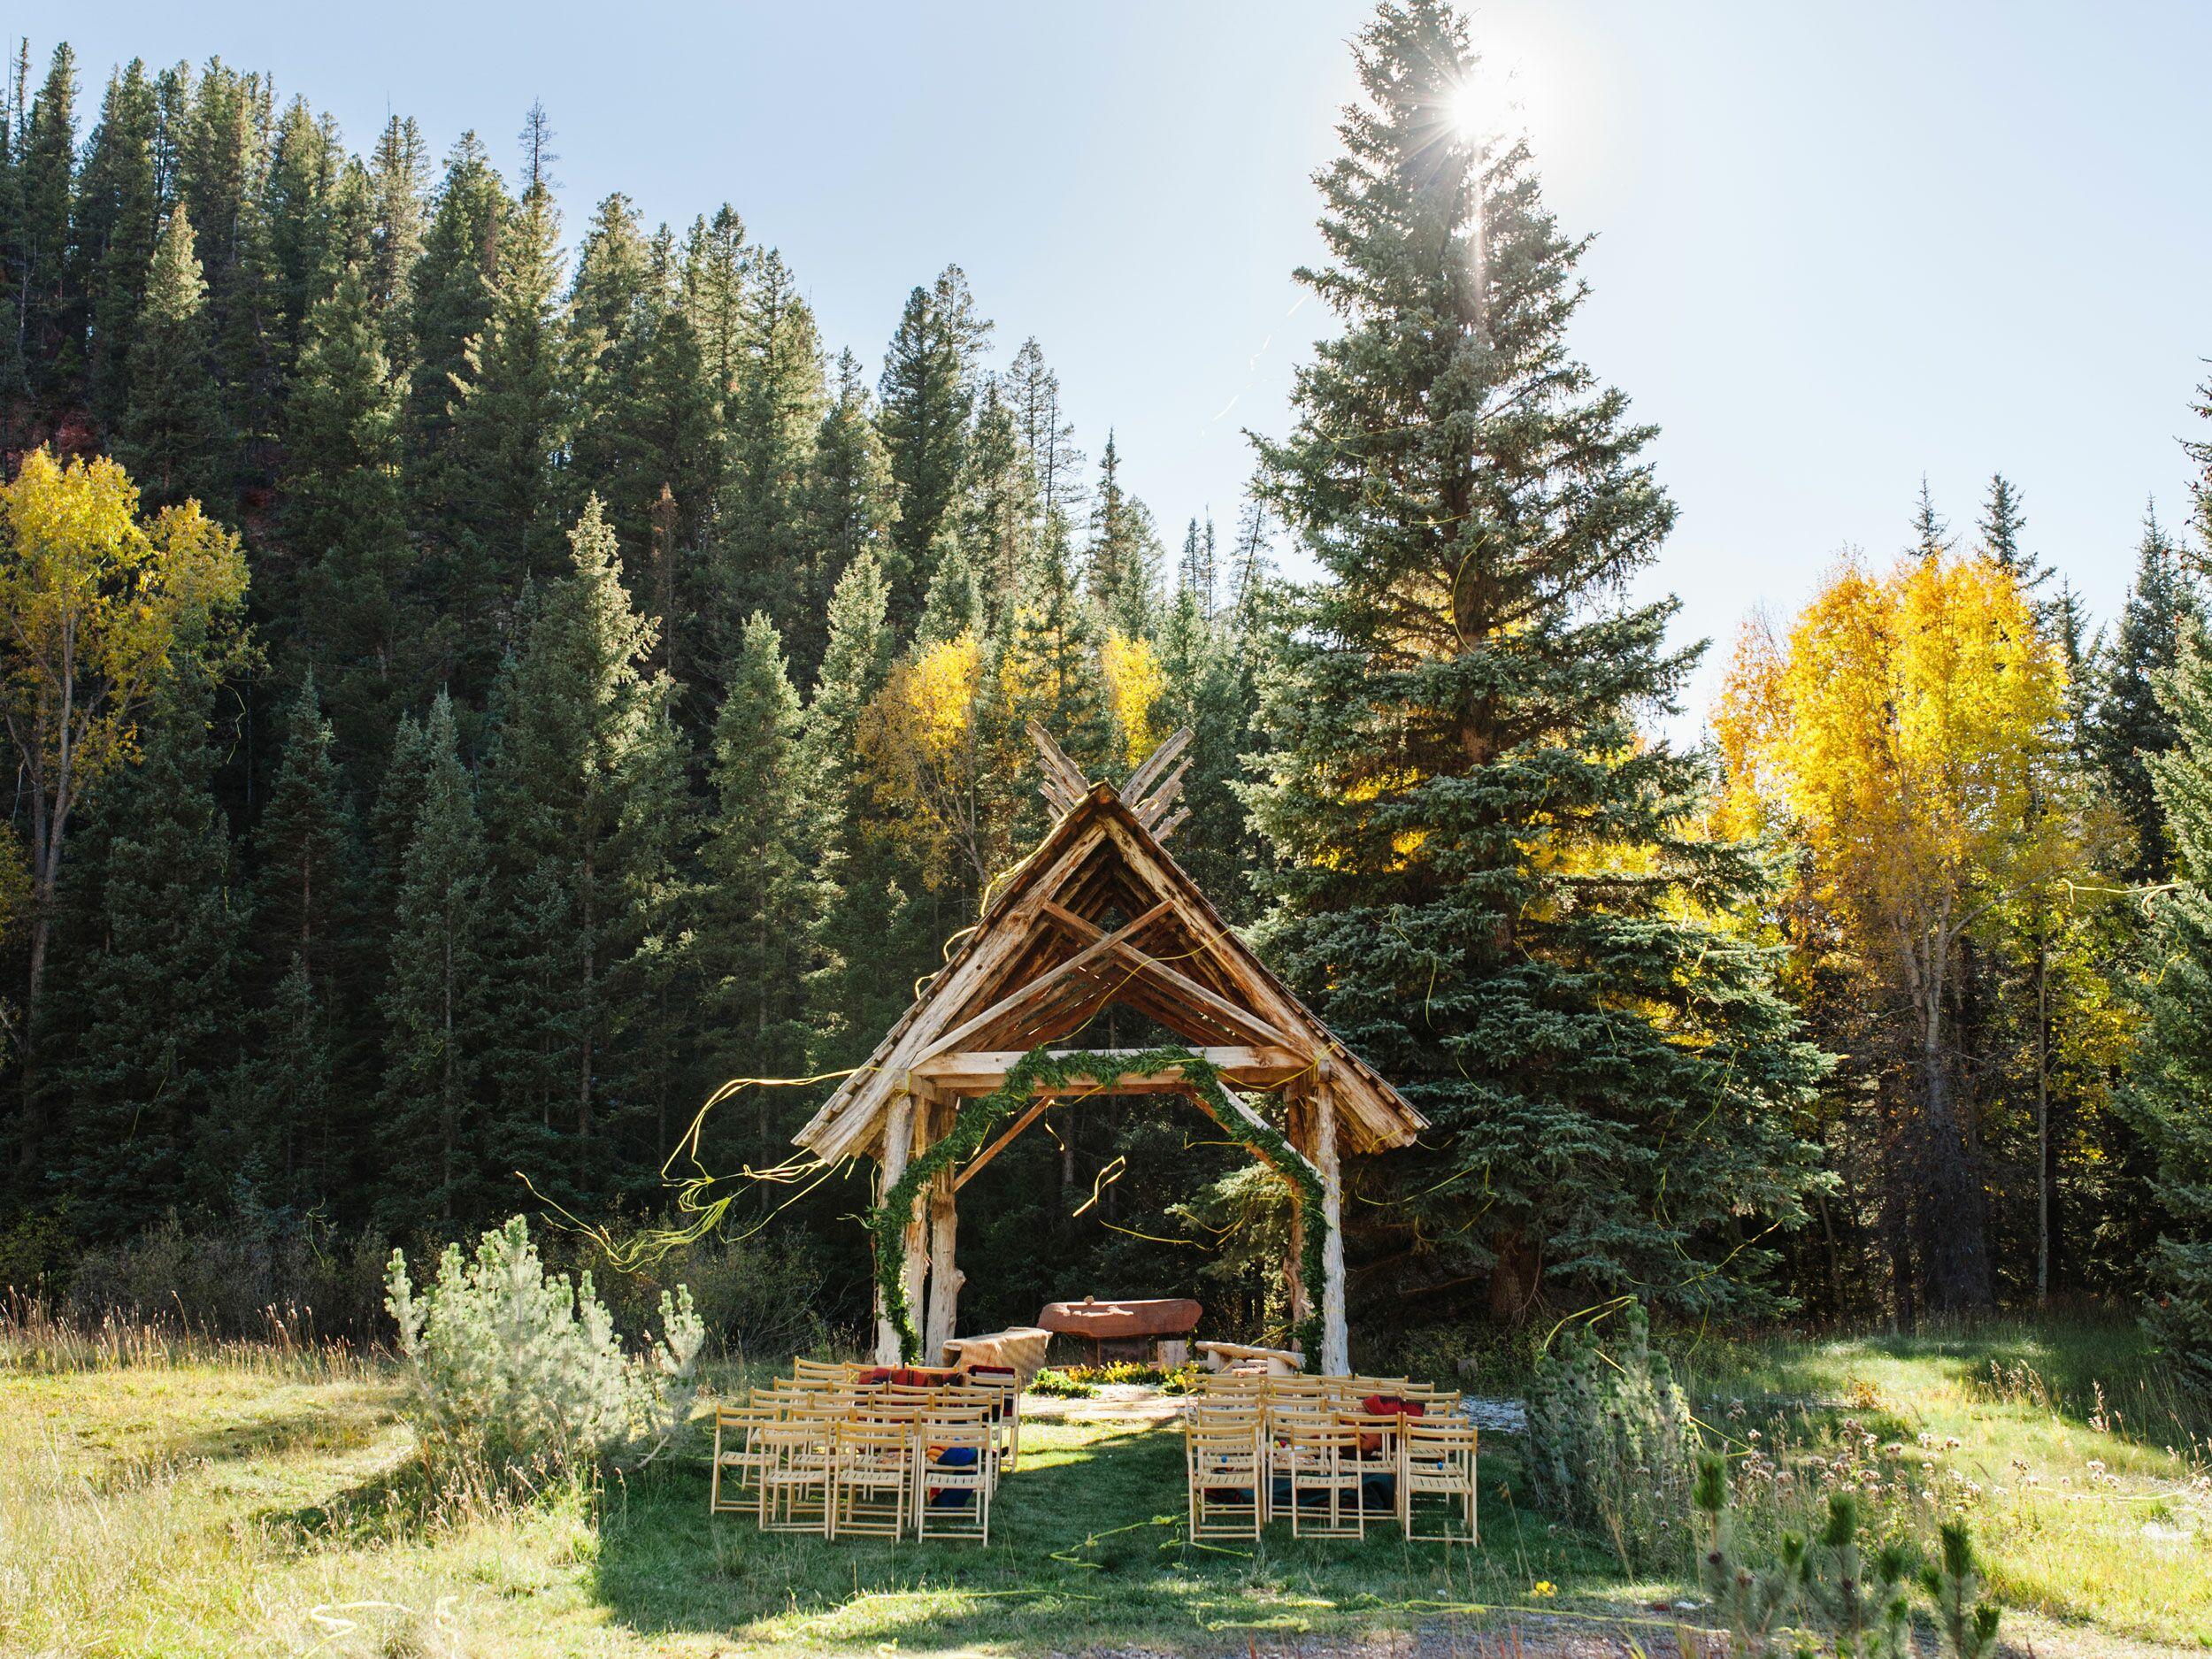 aspen operator north colorado service rent looking is the cabins operators out historic u ar for guard station s forest rental seeks to mancos articles of